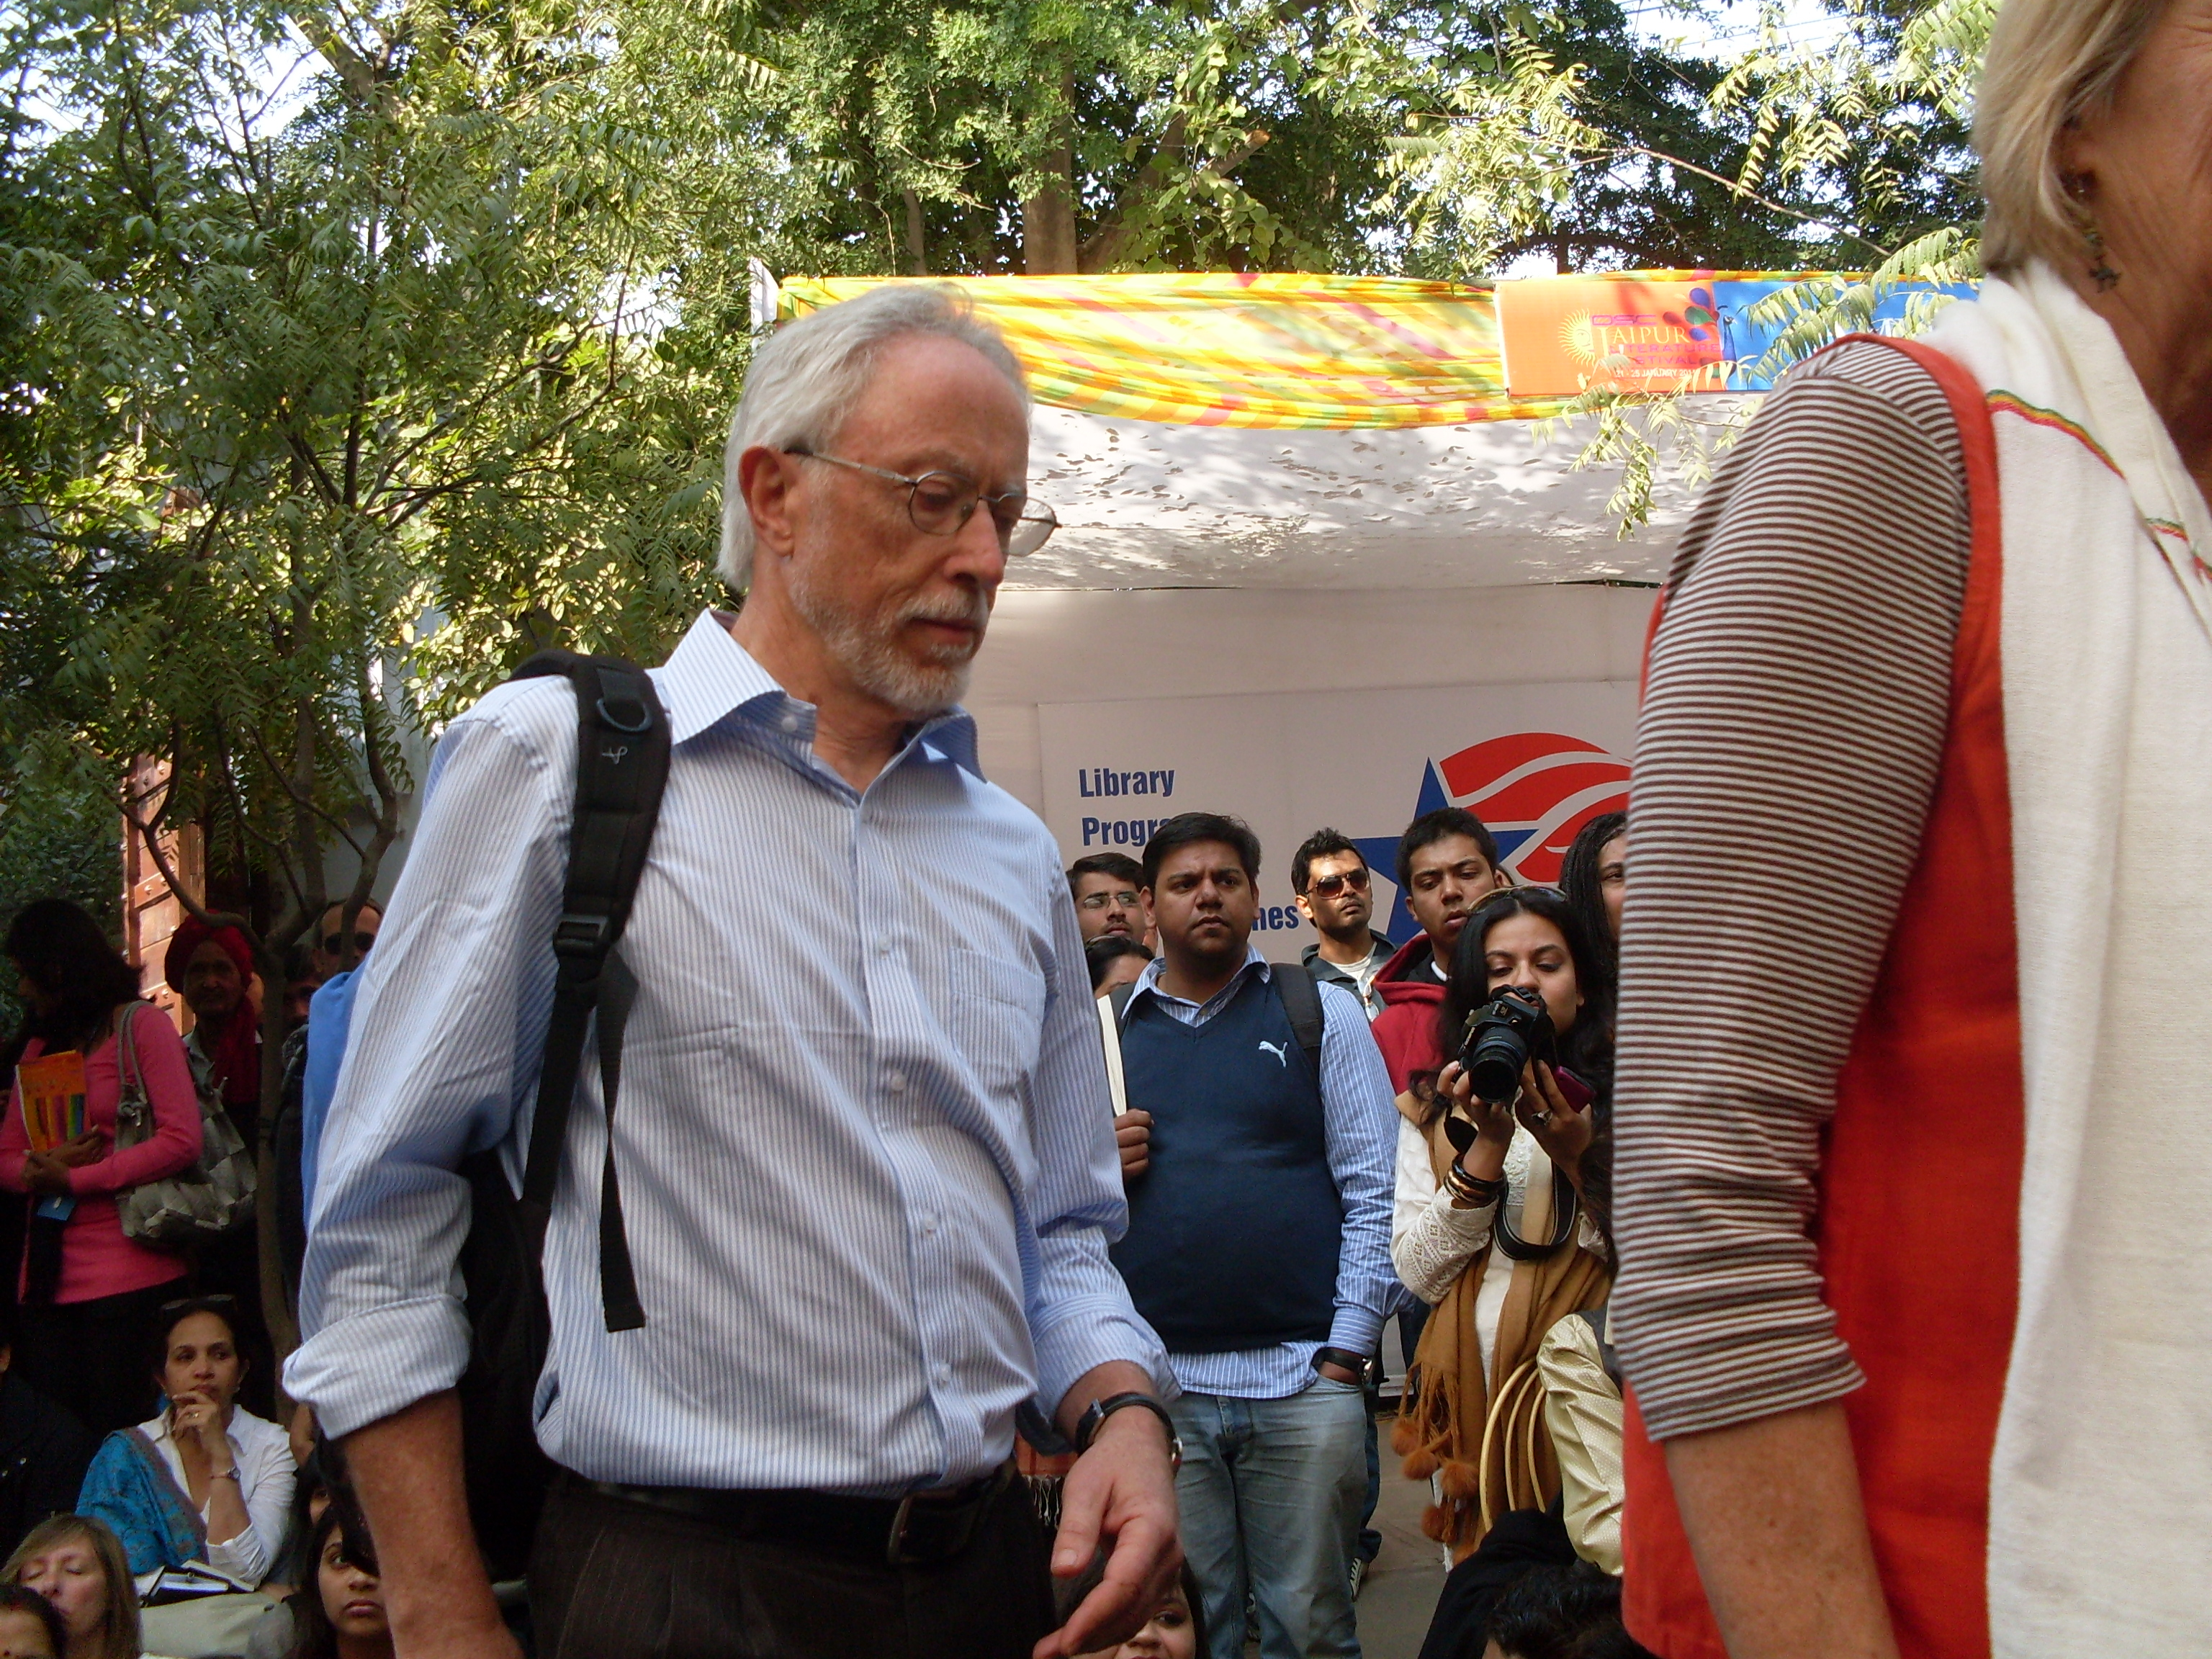 disgrace jm coetzee Professor david lurie's life changes immeasurably when he is asked to resign his teaching position in disgrace over an  disgrace summary j m coetzee.